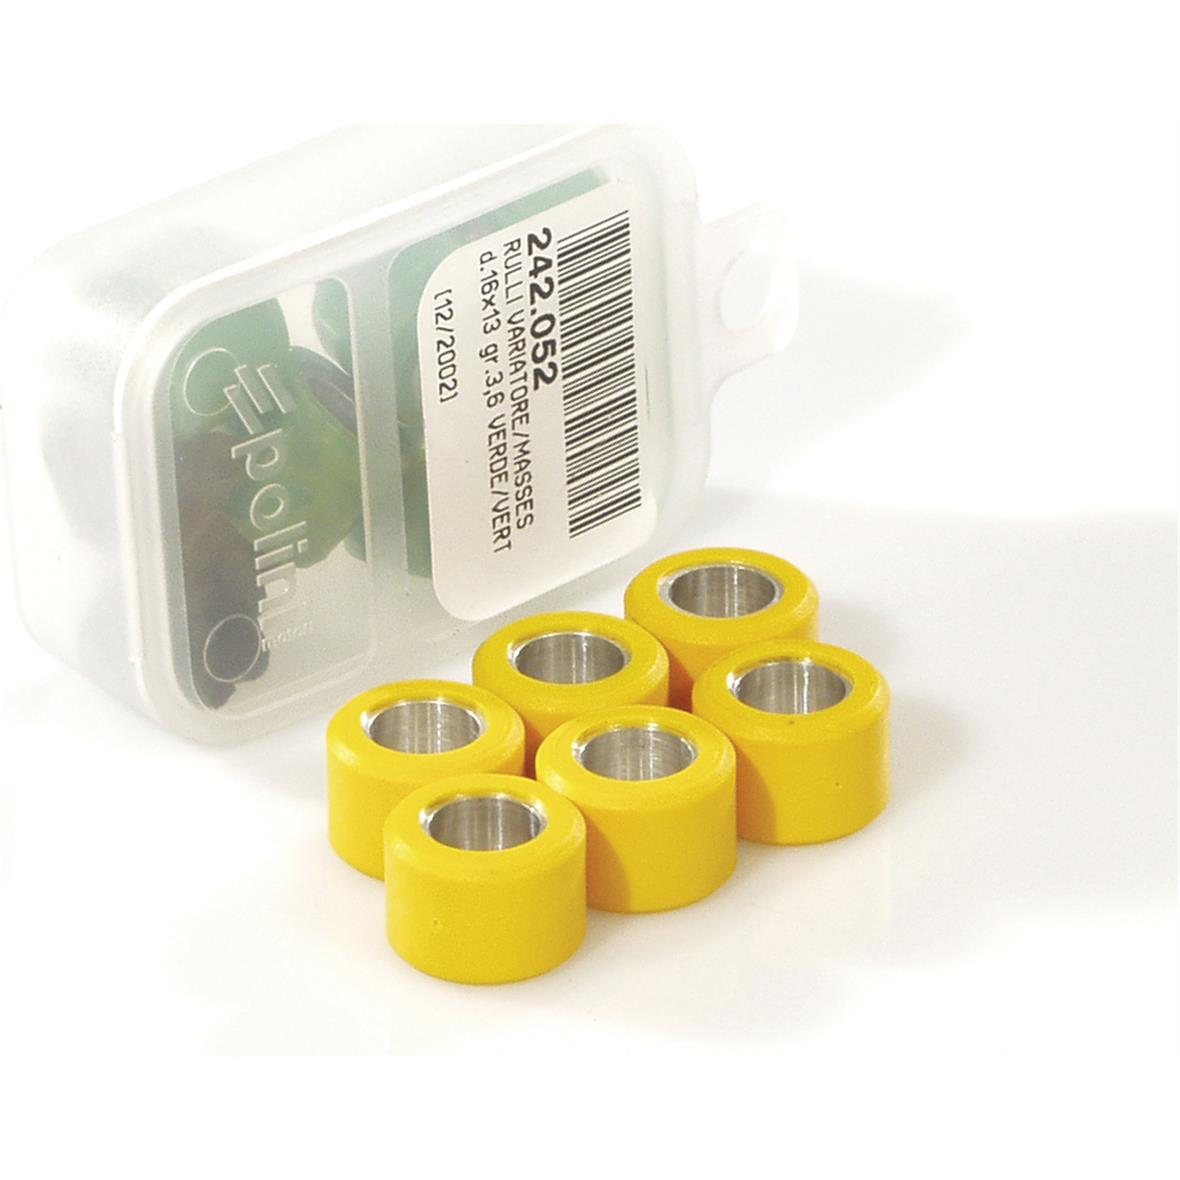 Product Image for 'Variator Rollers POLINI 15x12 mm 10,3gTitle'